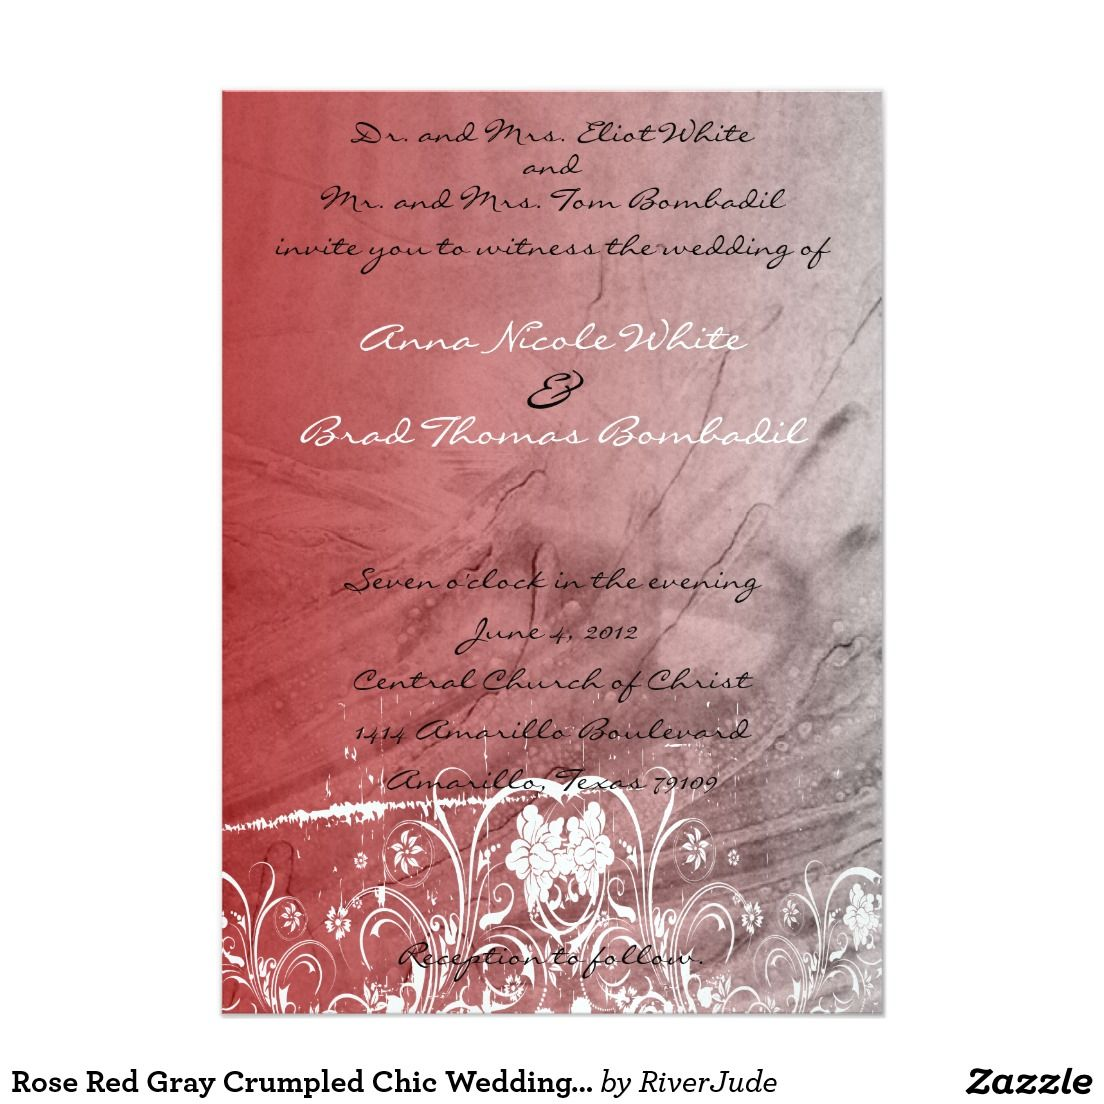 Rose Red Gray Crumpled Chic Wedding Invitation   Projects to Try ...